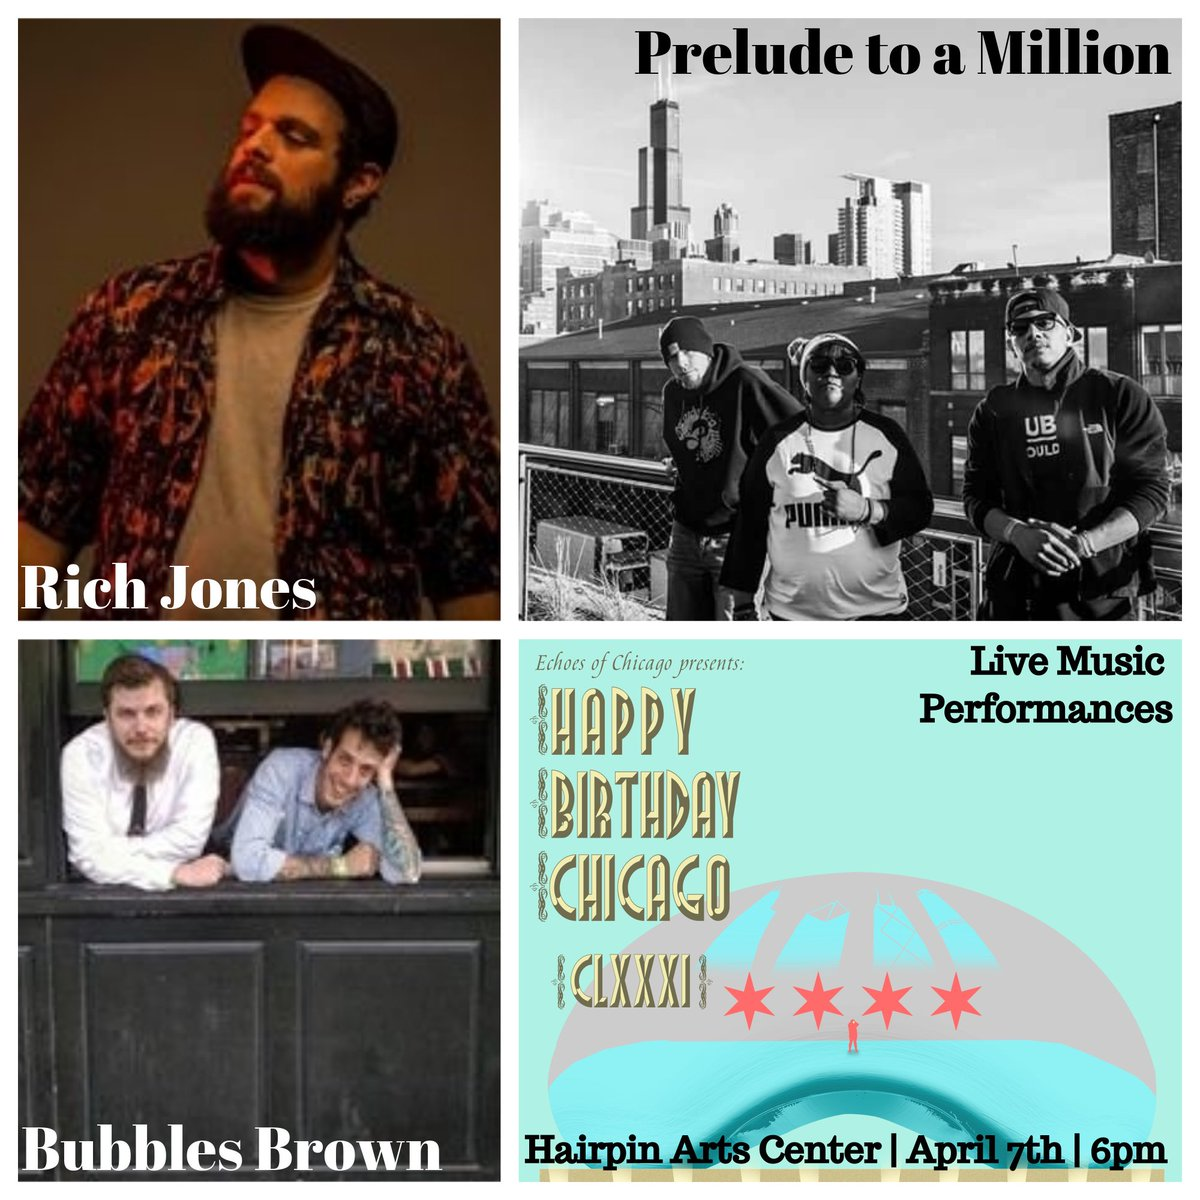 This Saturday! See Rich Jones, Prelude to a Million, and Bubbles Brown at Hairpin Arts Center at 2810 N Milwaukee bit.ly/HBChicago18 ... #ChicagoEvents #Chicago #ChicagoMusic